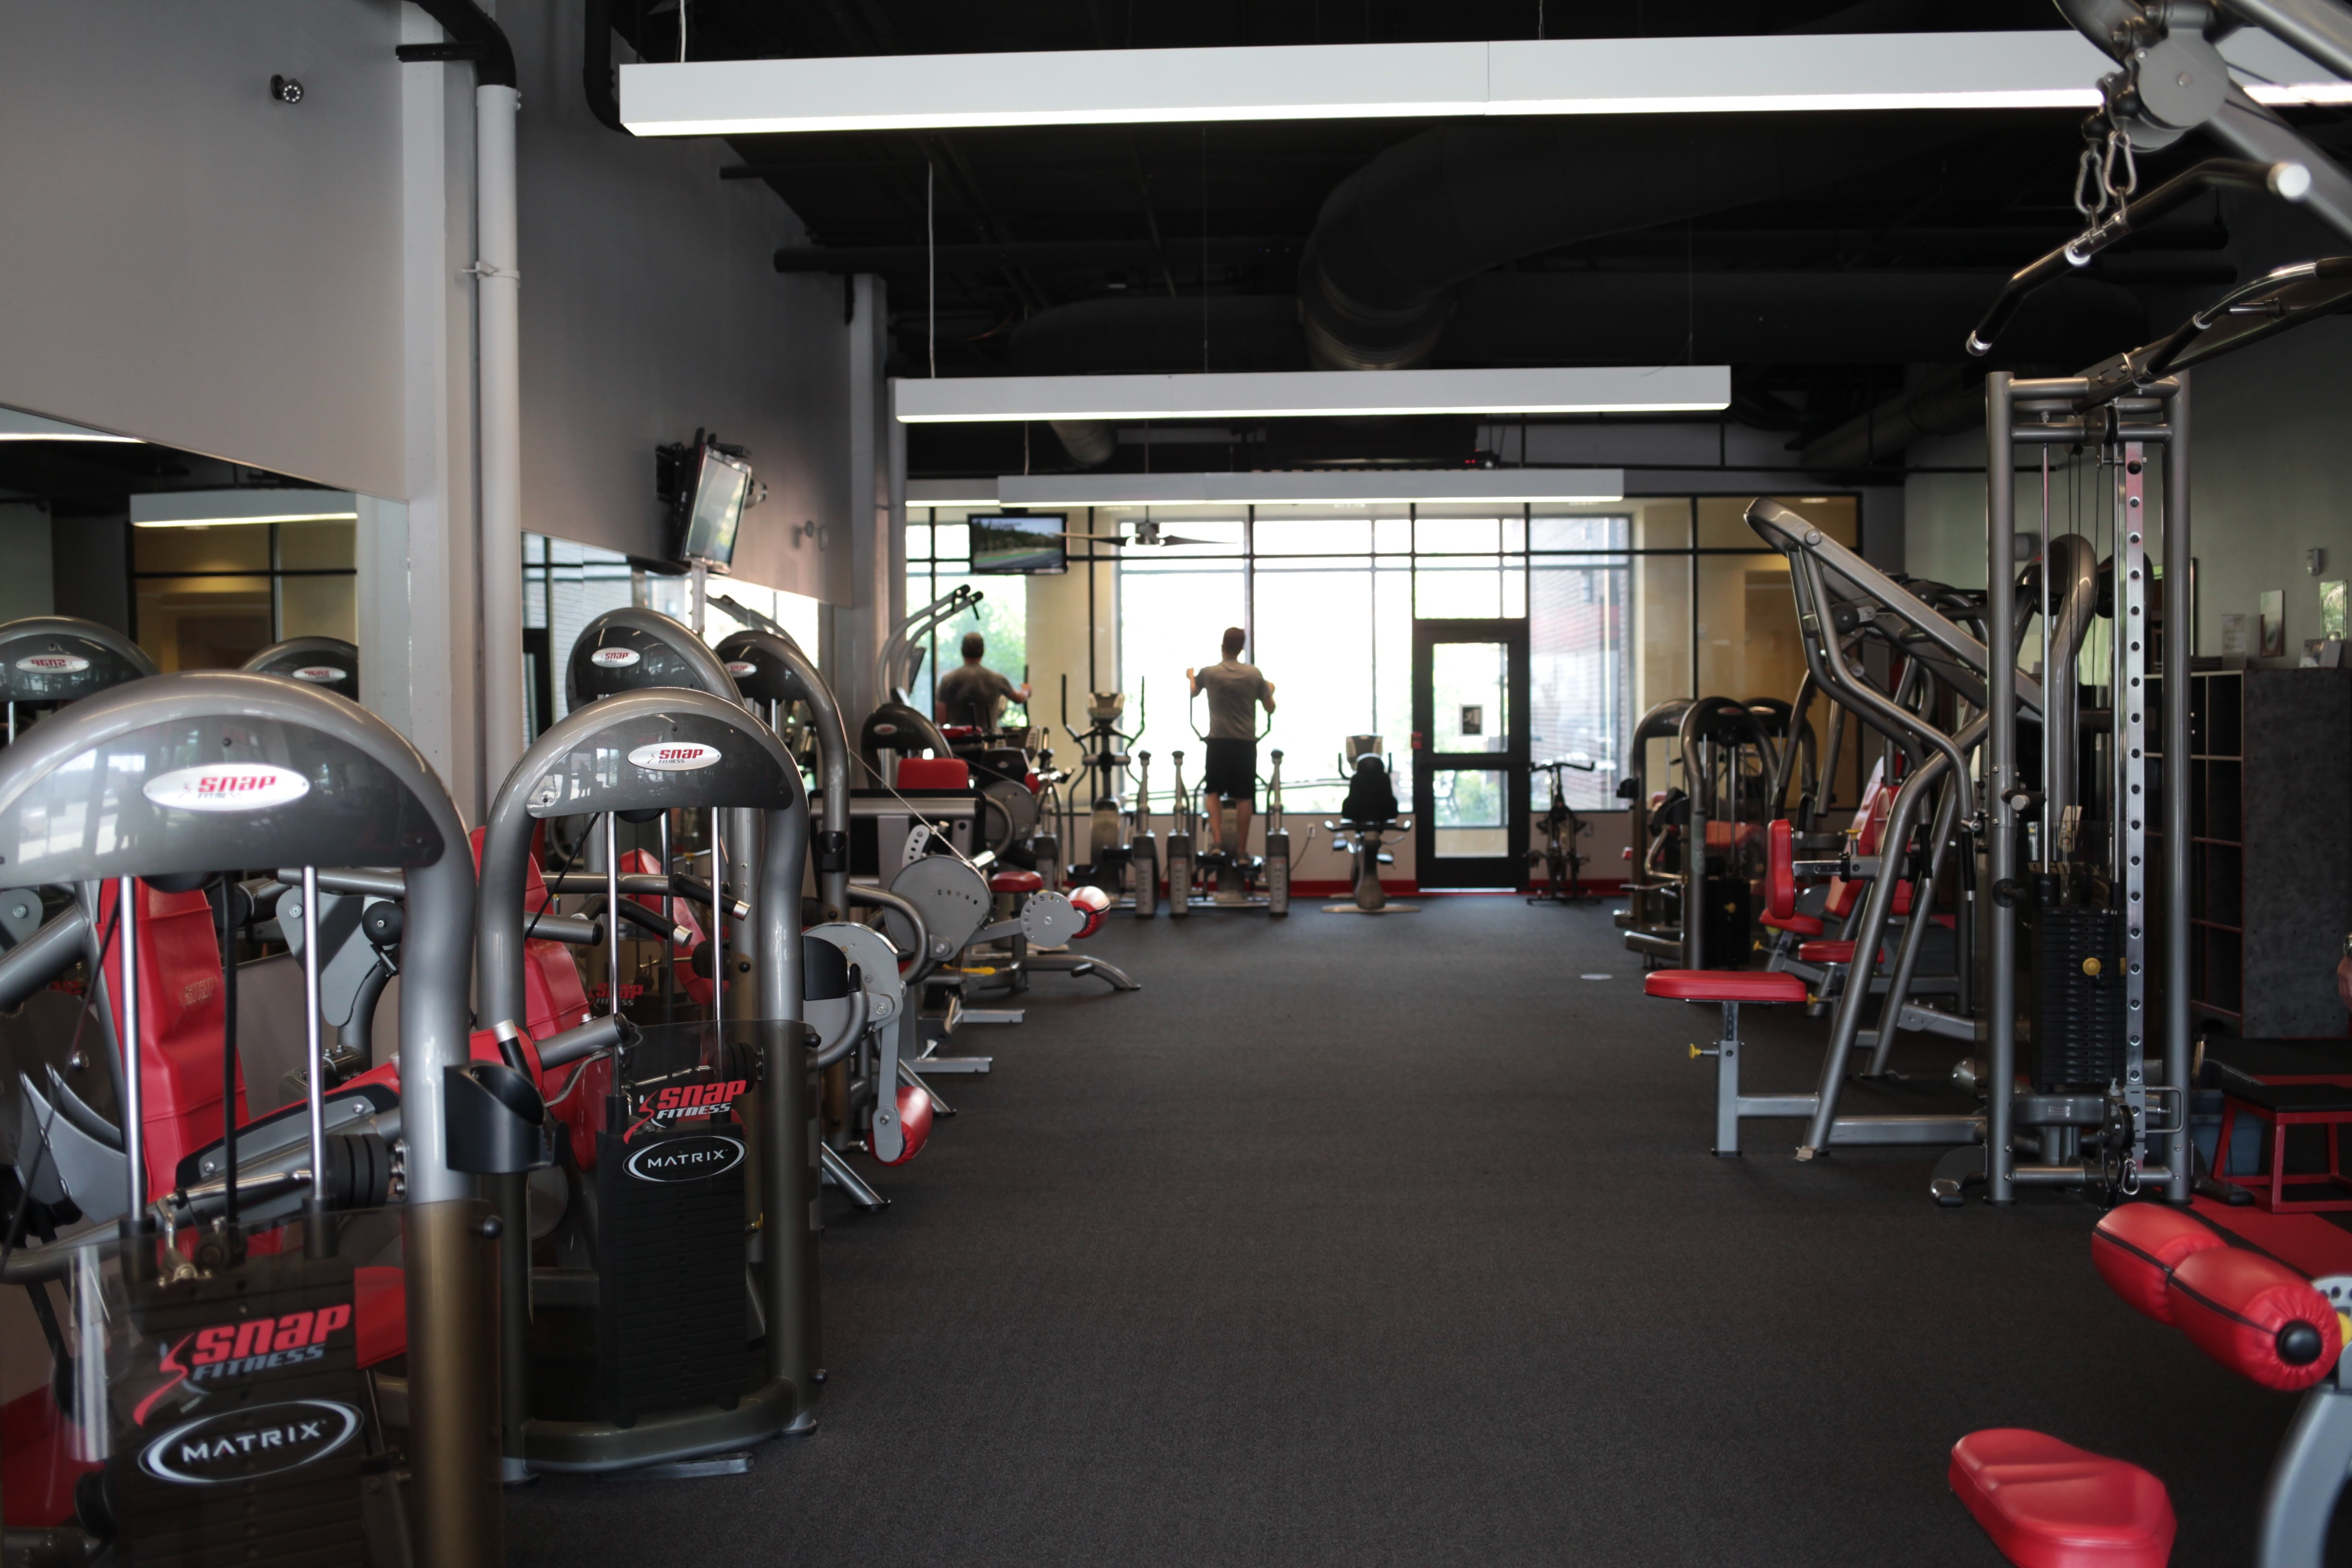 Lykens Companies has partnered with Snap Fitness to offer its tenants a new way to experience an affordable healthy lifestyle. An array of free weights, exercise machines, and cardio equipment makes for a great gym layout. Located in Columbus, Ohio, Lykens Companies serves Columbus, Ohio's urban core with an eye toward historical preservation and restoration. We are deeply involved in the Short North, Victorian Village, Italian Village, Olde Towne East, and Weiland Park communities.